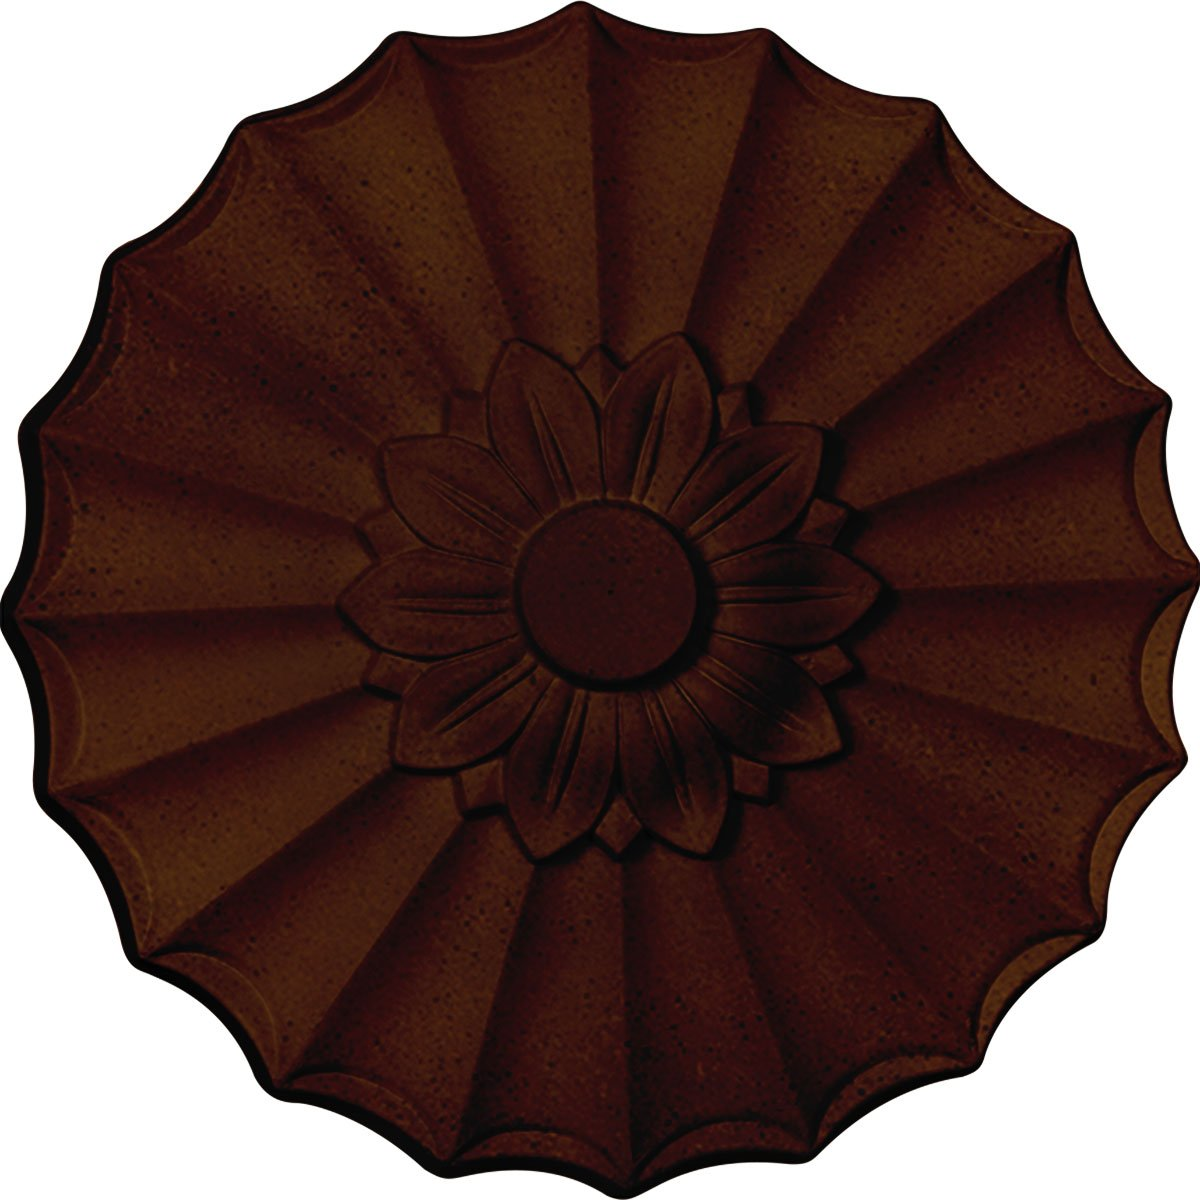 Ekena Millwork CM09SHRZS 9'' OD X 1 3/8'' P Shakuras Ceiling Medallion fits Canopies up to 1, Rubbed Bronze